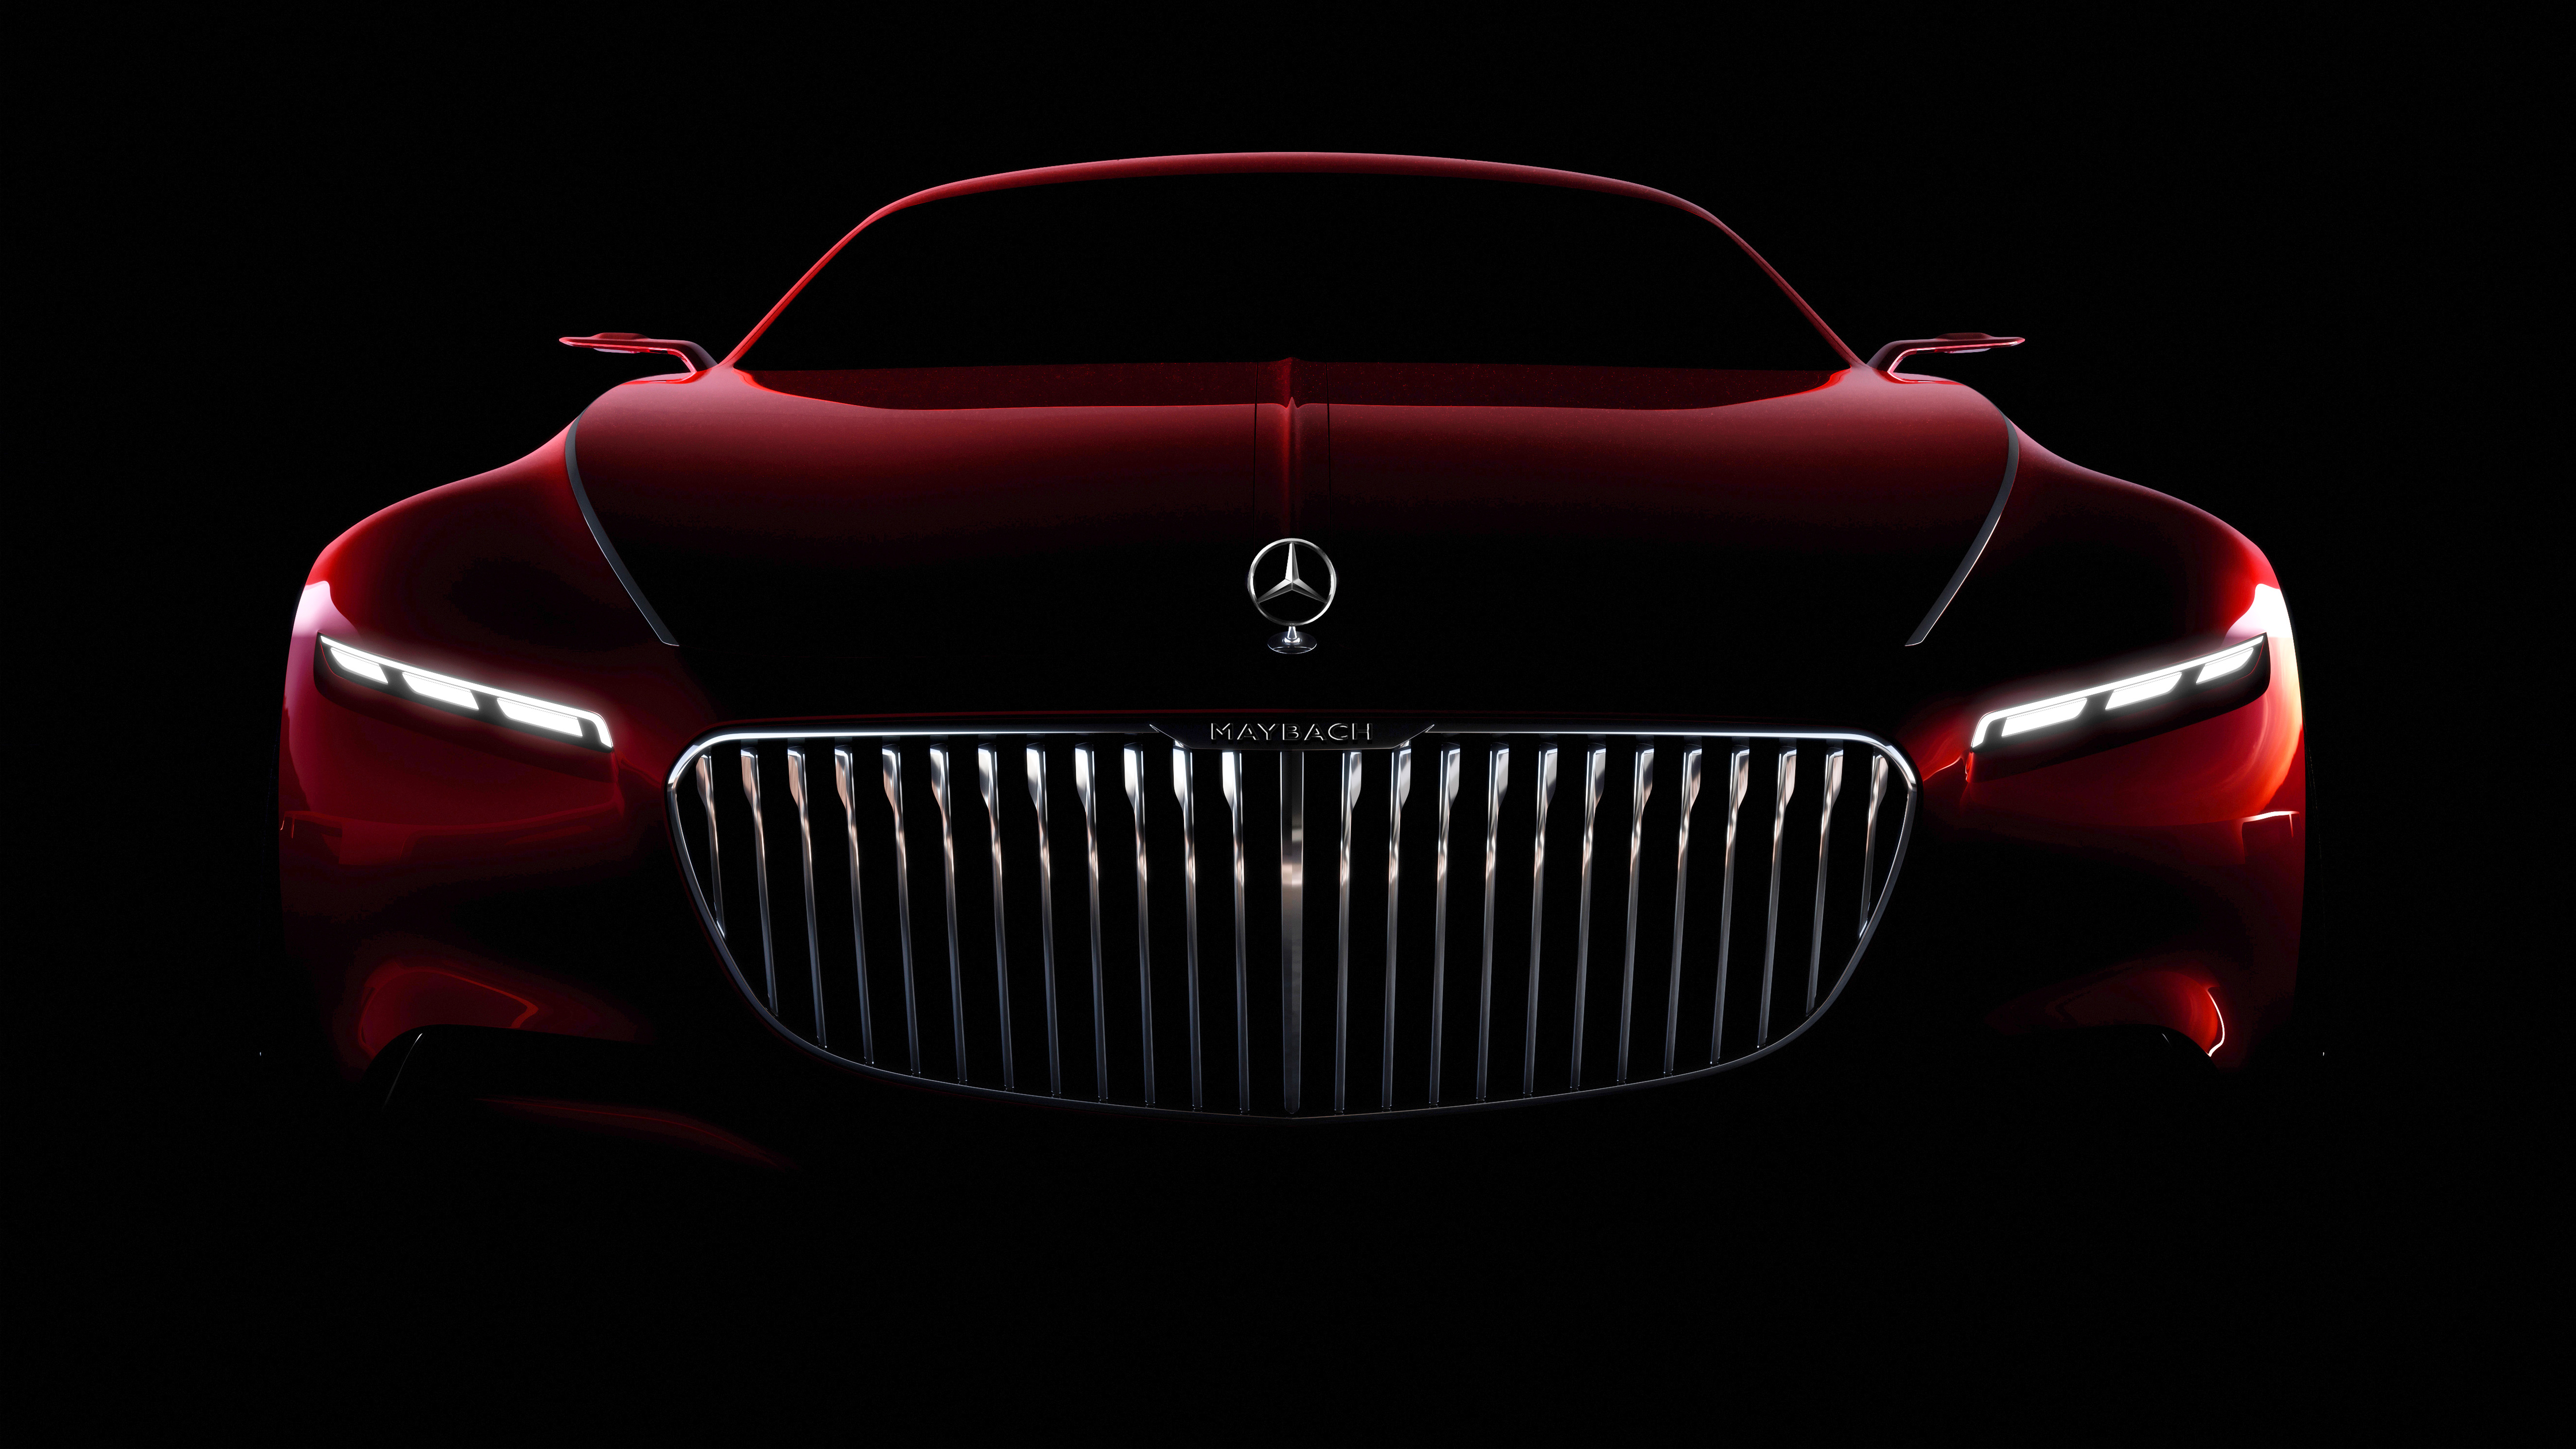 Car Wallpapers 4k Bentely Mercedes Maybach Coupe Concept 5k Wallpaper Hd Car